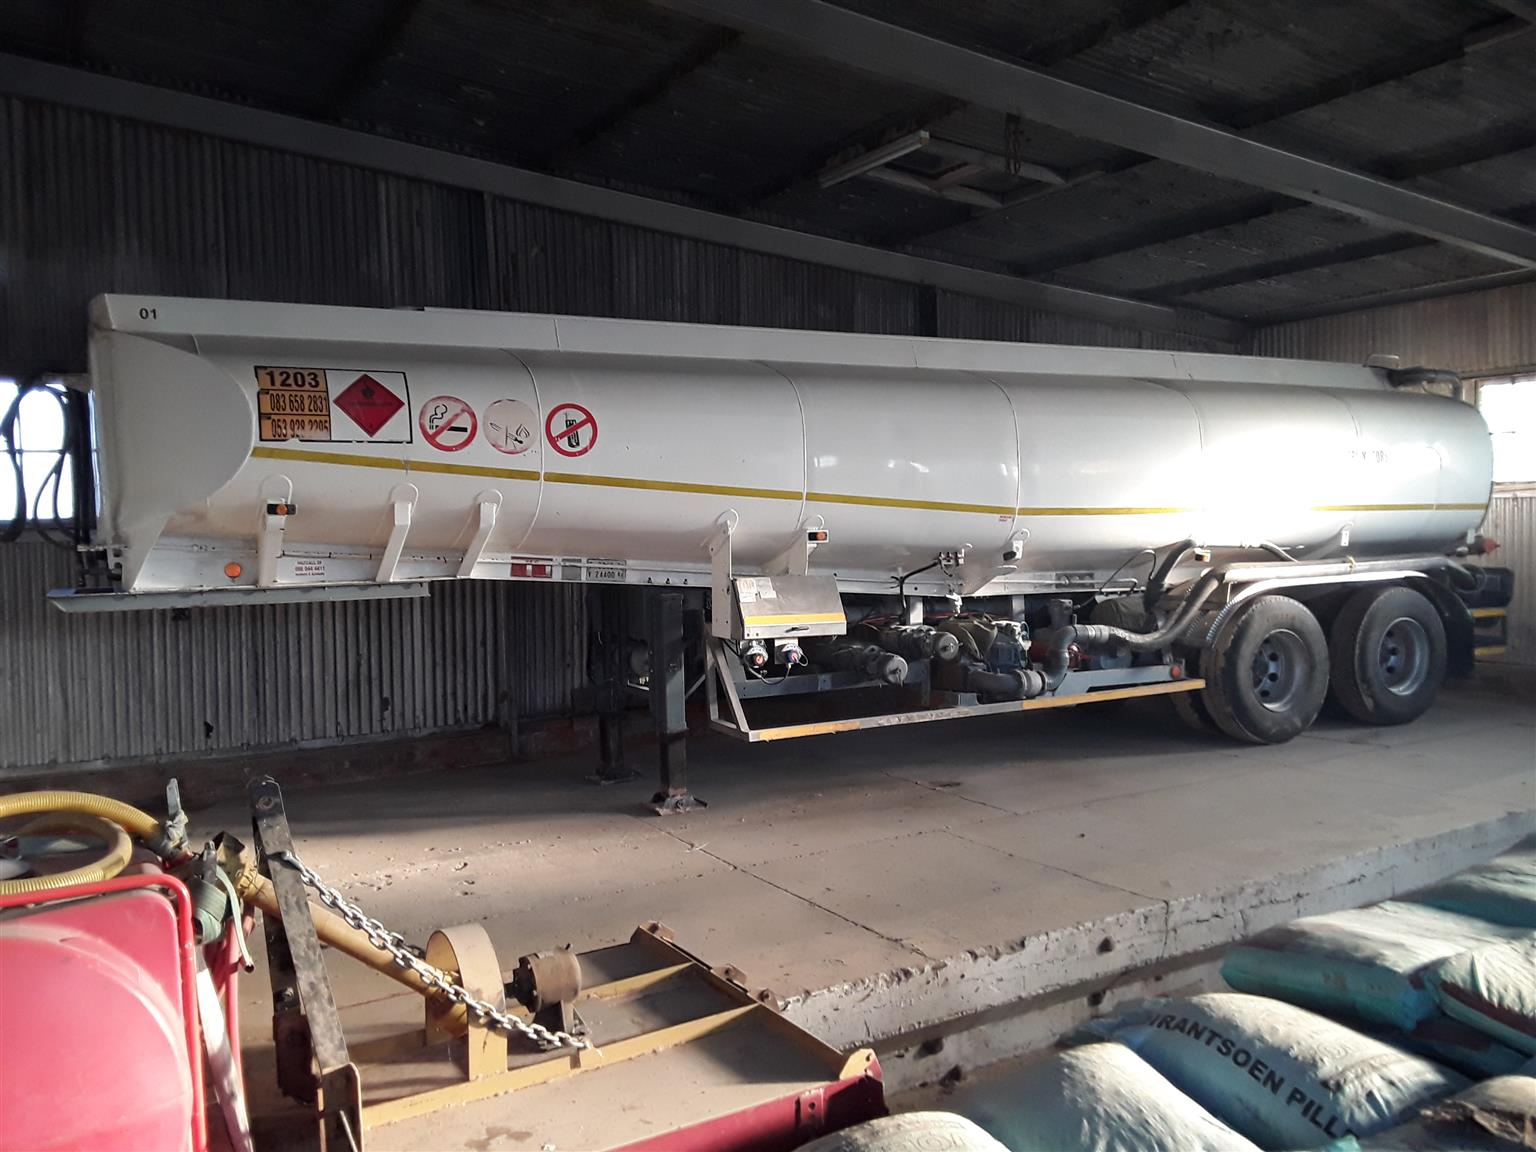 1983 Tank Clinic Fuel Tanker With Pumps Meters And Vapour Recovery System, Overfill Sensors And Fitted Scully Conections For Sale